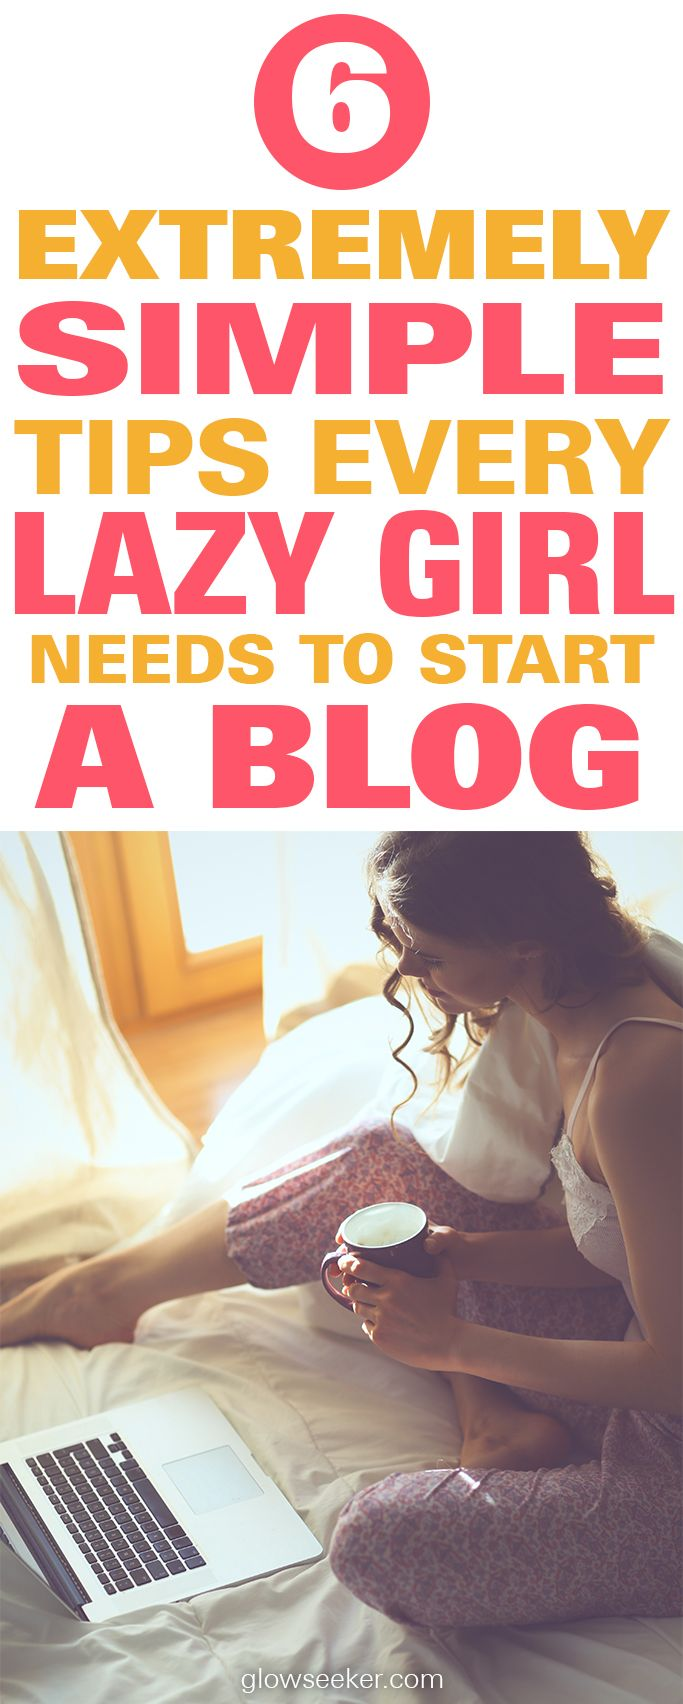 6 extremely simple tips every lazy girl needs to start a blog for money. Blogging for money is easy once you've setup a WordPress site, acquired hosting and start building your email list. #bloggingformoney #blogandmakemoney